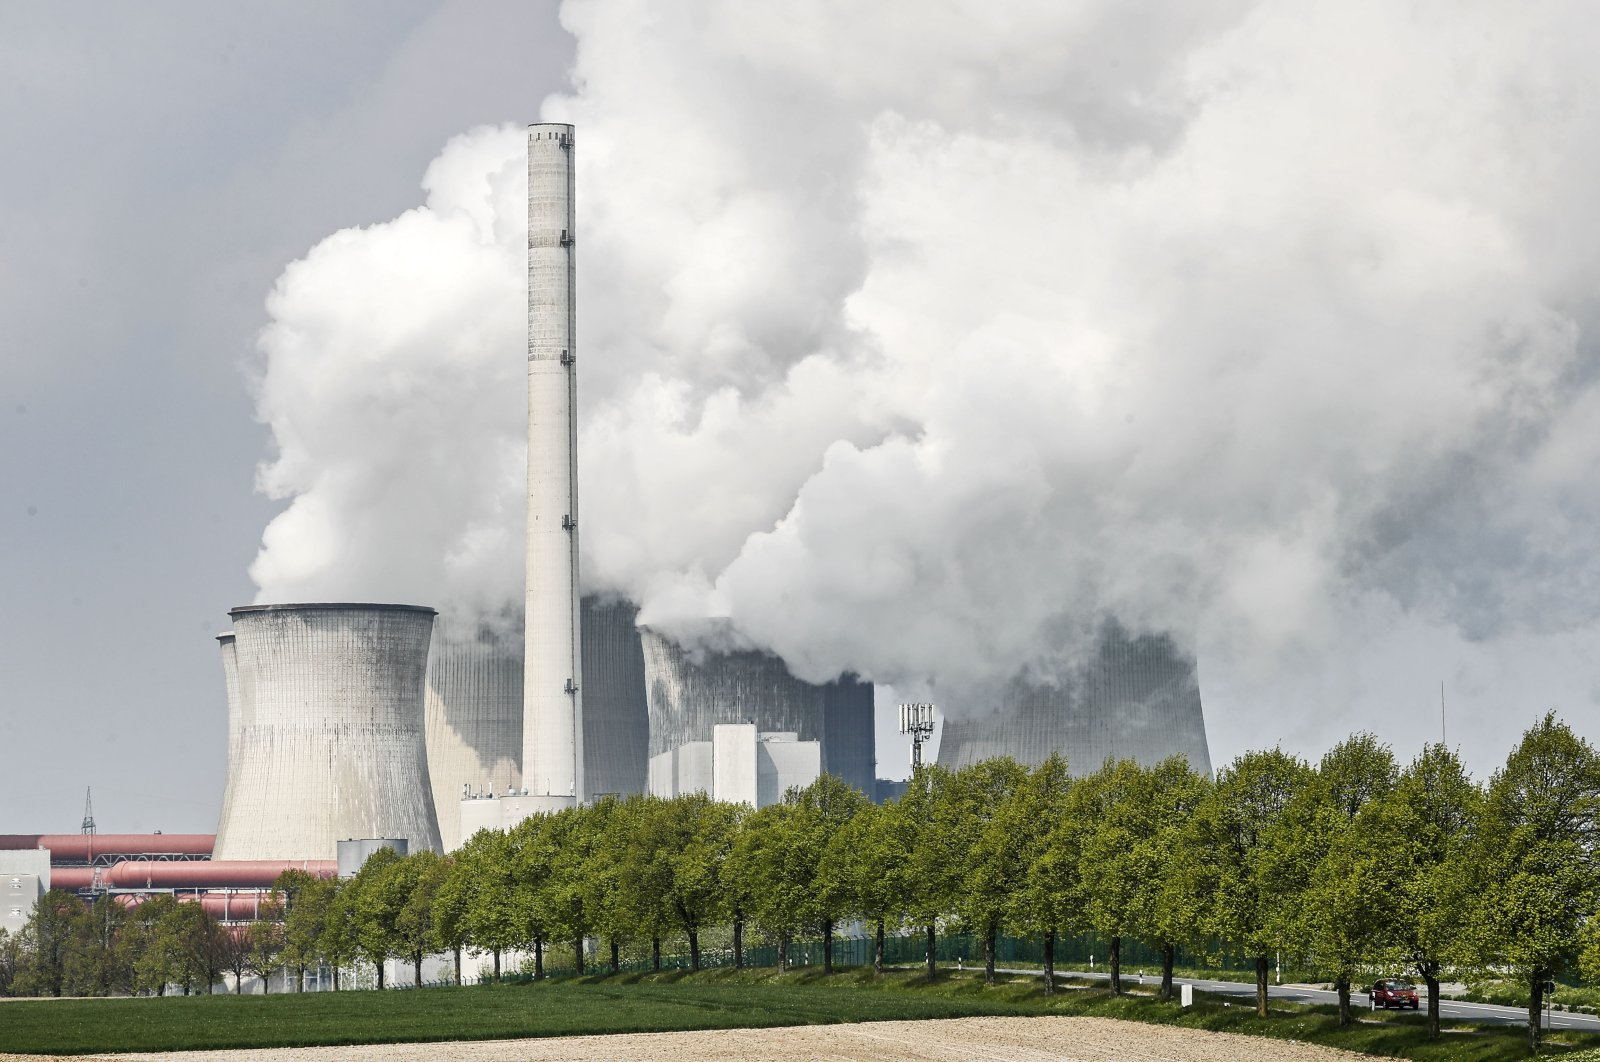 A coal-fired RWE power plant steams on a sunny day in Neurath, Germany, April 29, 2021. (AP Photo)